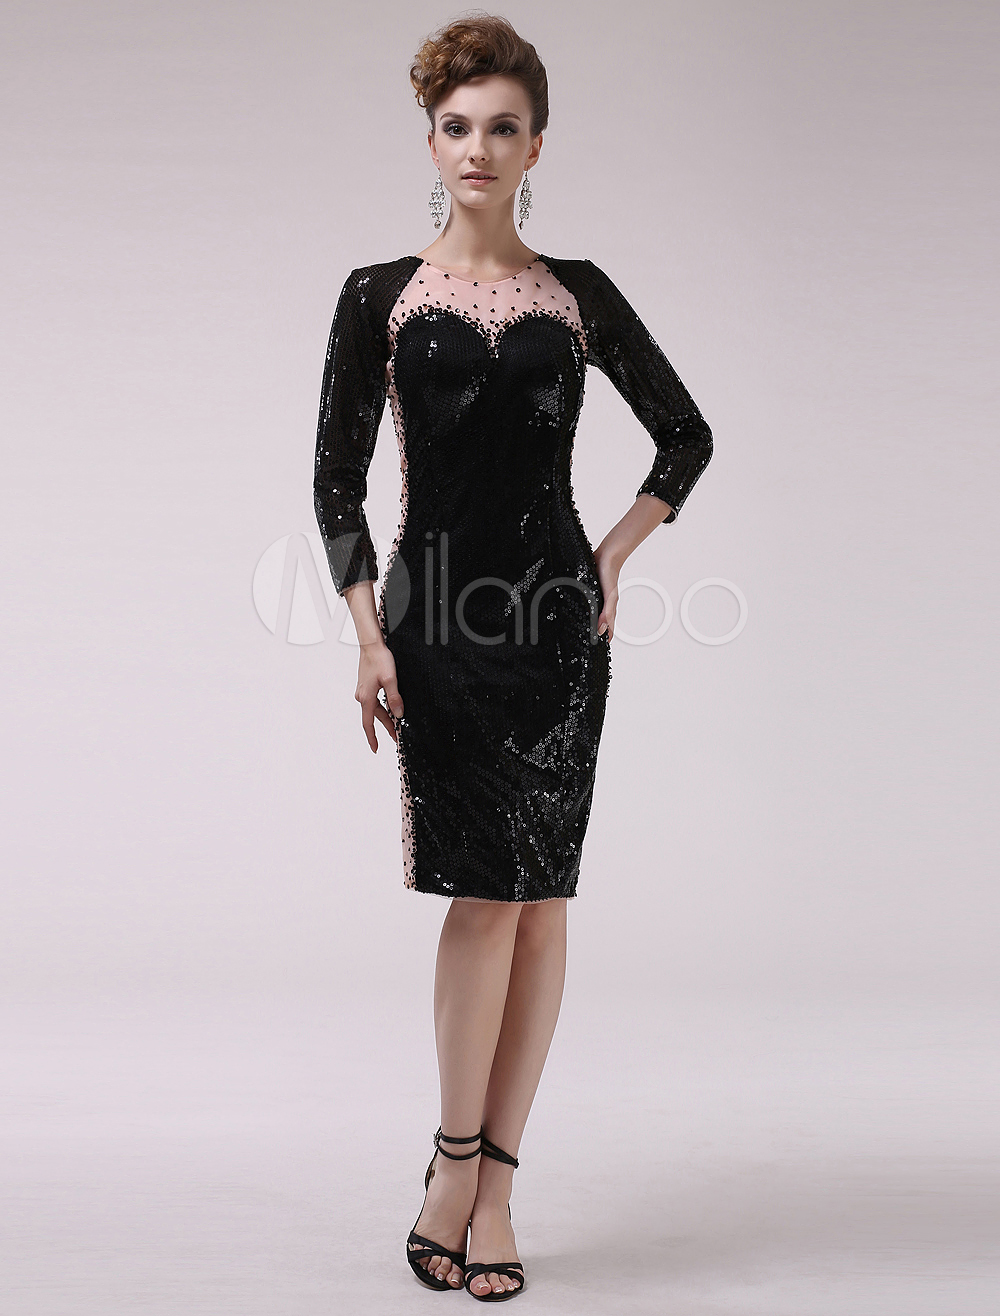 Black Long Sleeves Beading Sequined Sheath Cocktail Dress with Jewel Neck Milanoo (Wedding Cocktail Dresses) photo